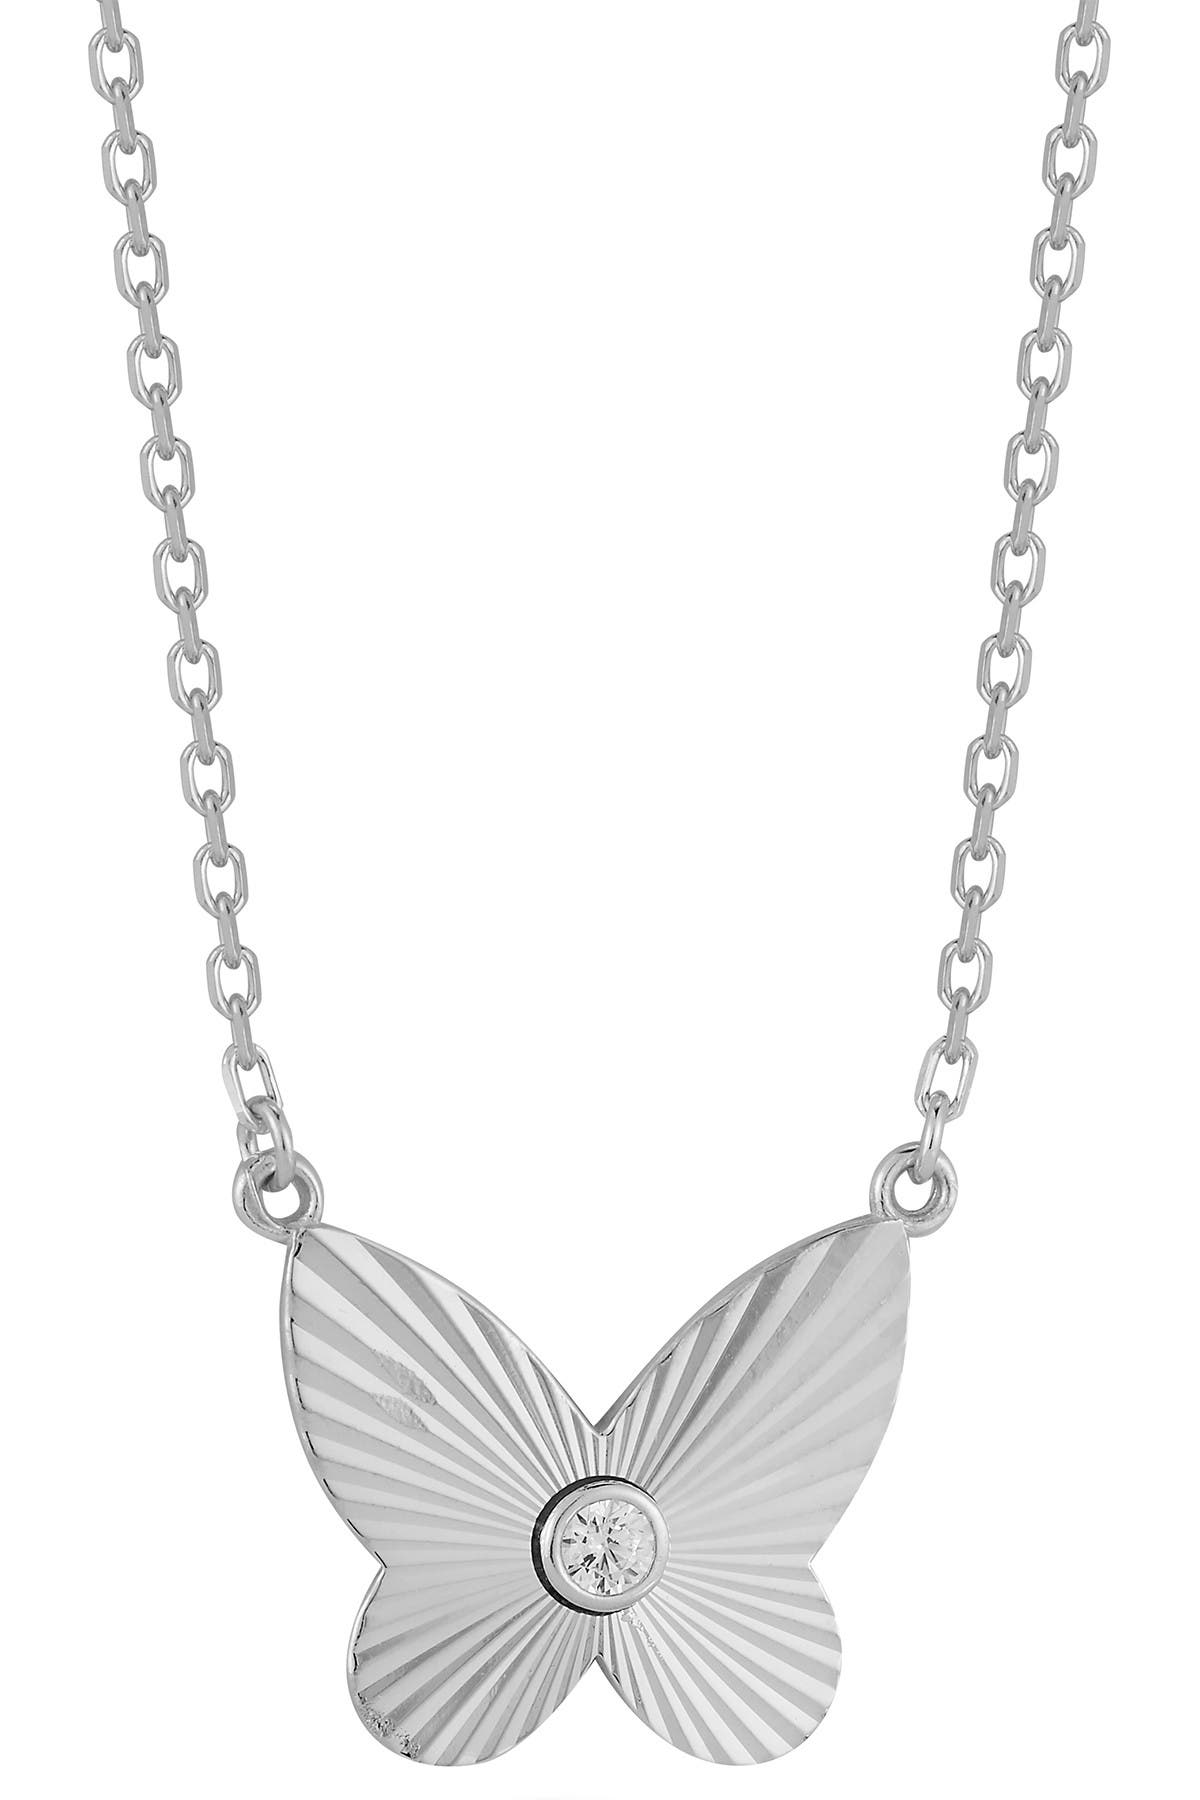 Image of Sphera Milano Sterling Silver CZ Butterfly Necklace